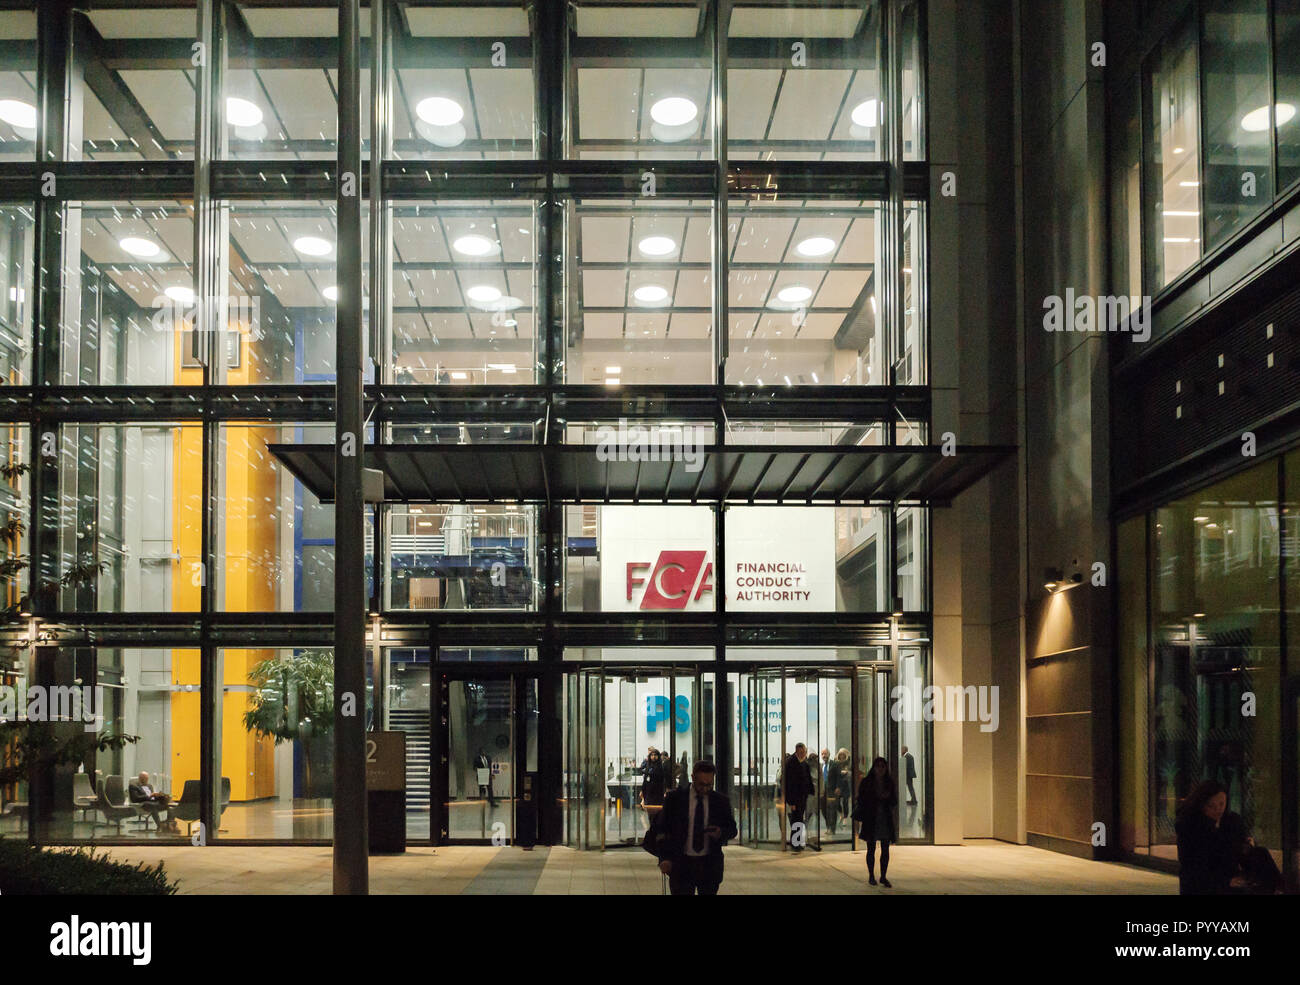 The new UK Financial Conduct Authority headquarters office building at 12 Endeavour Square, International Quarter, Stratford, East London, 2018 Stock Photo